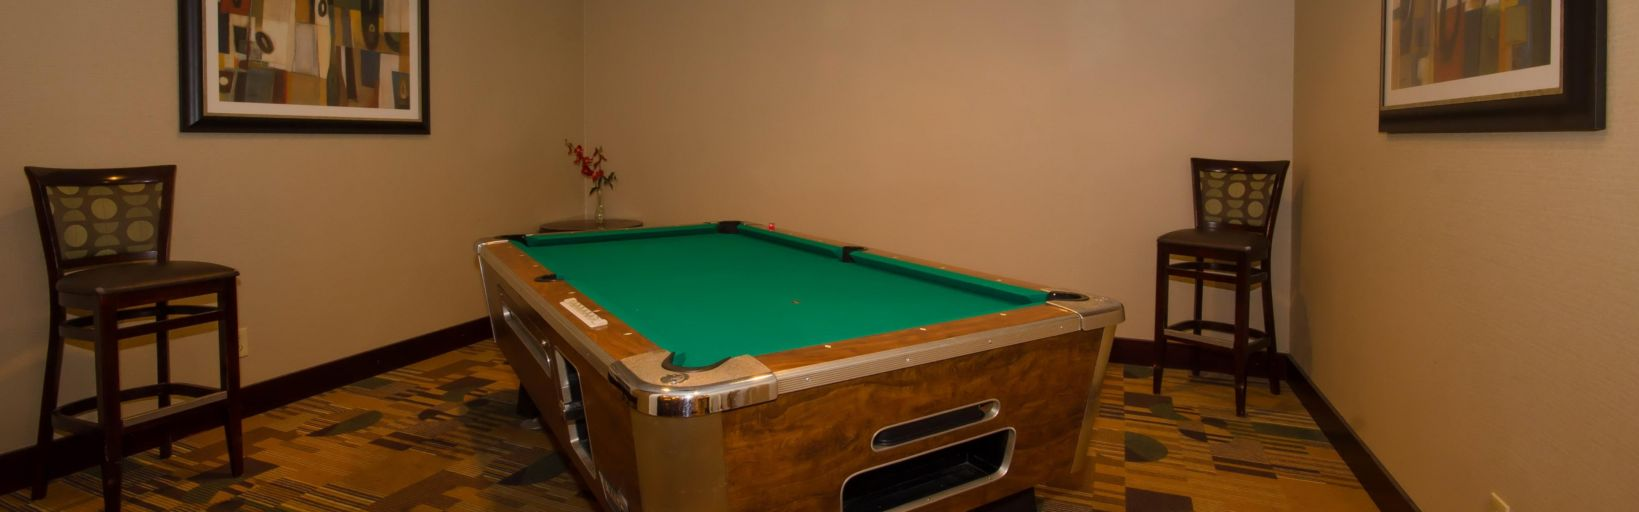 Holiday Inn Mansfield Hotels Holiday Inn Hotel Suites Mansfield - Conference pool table